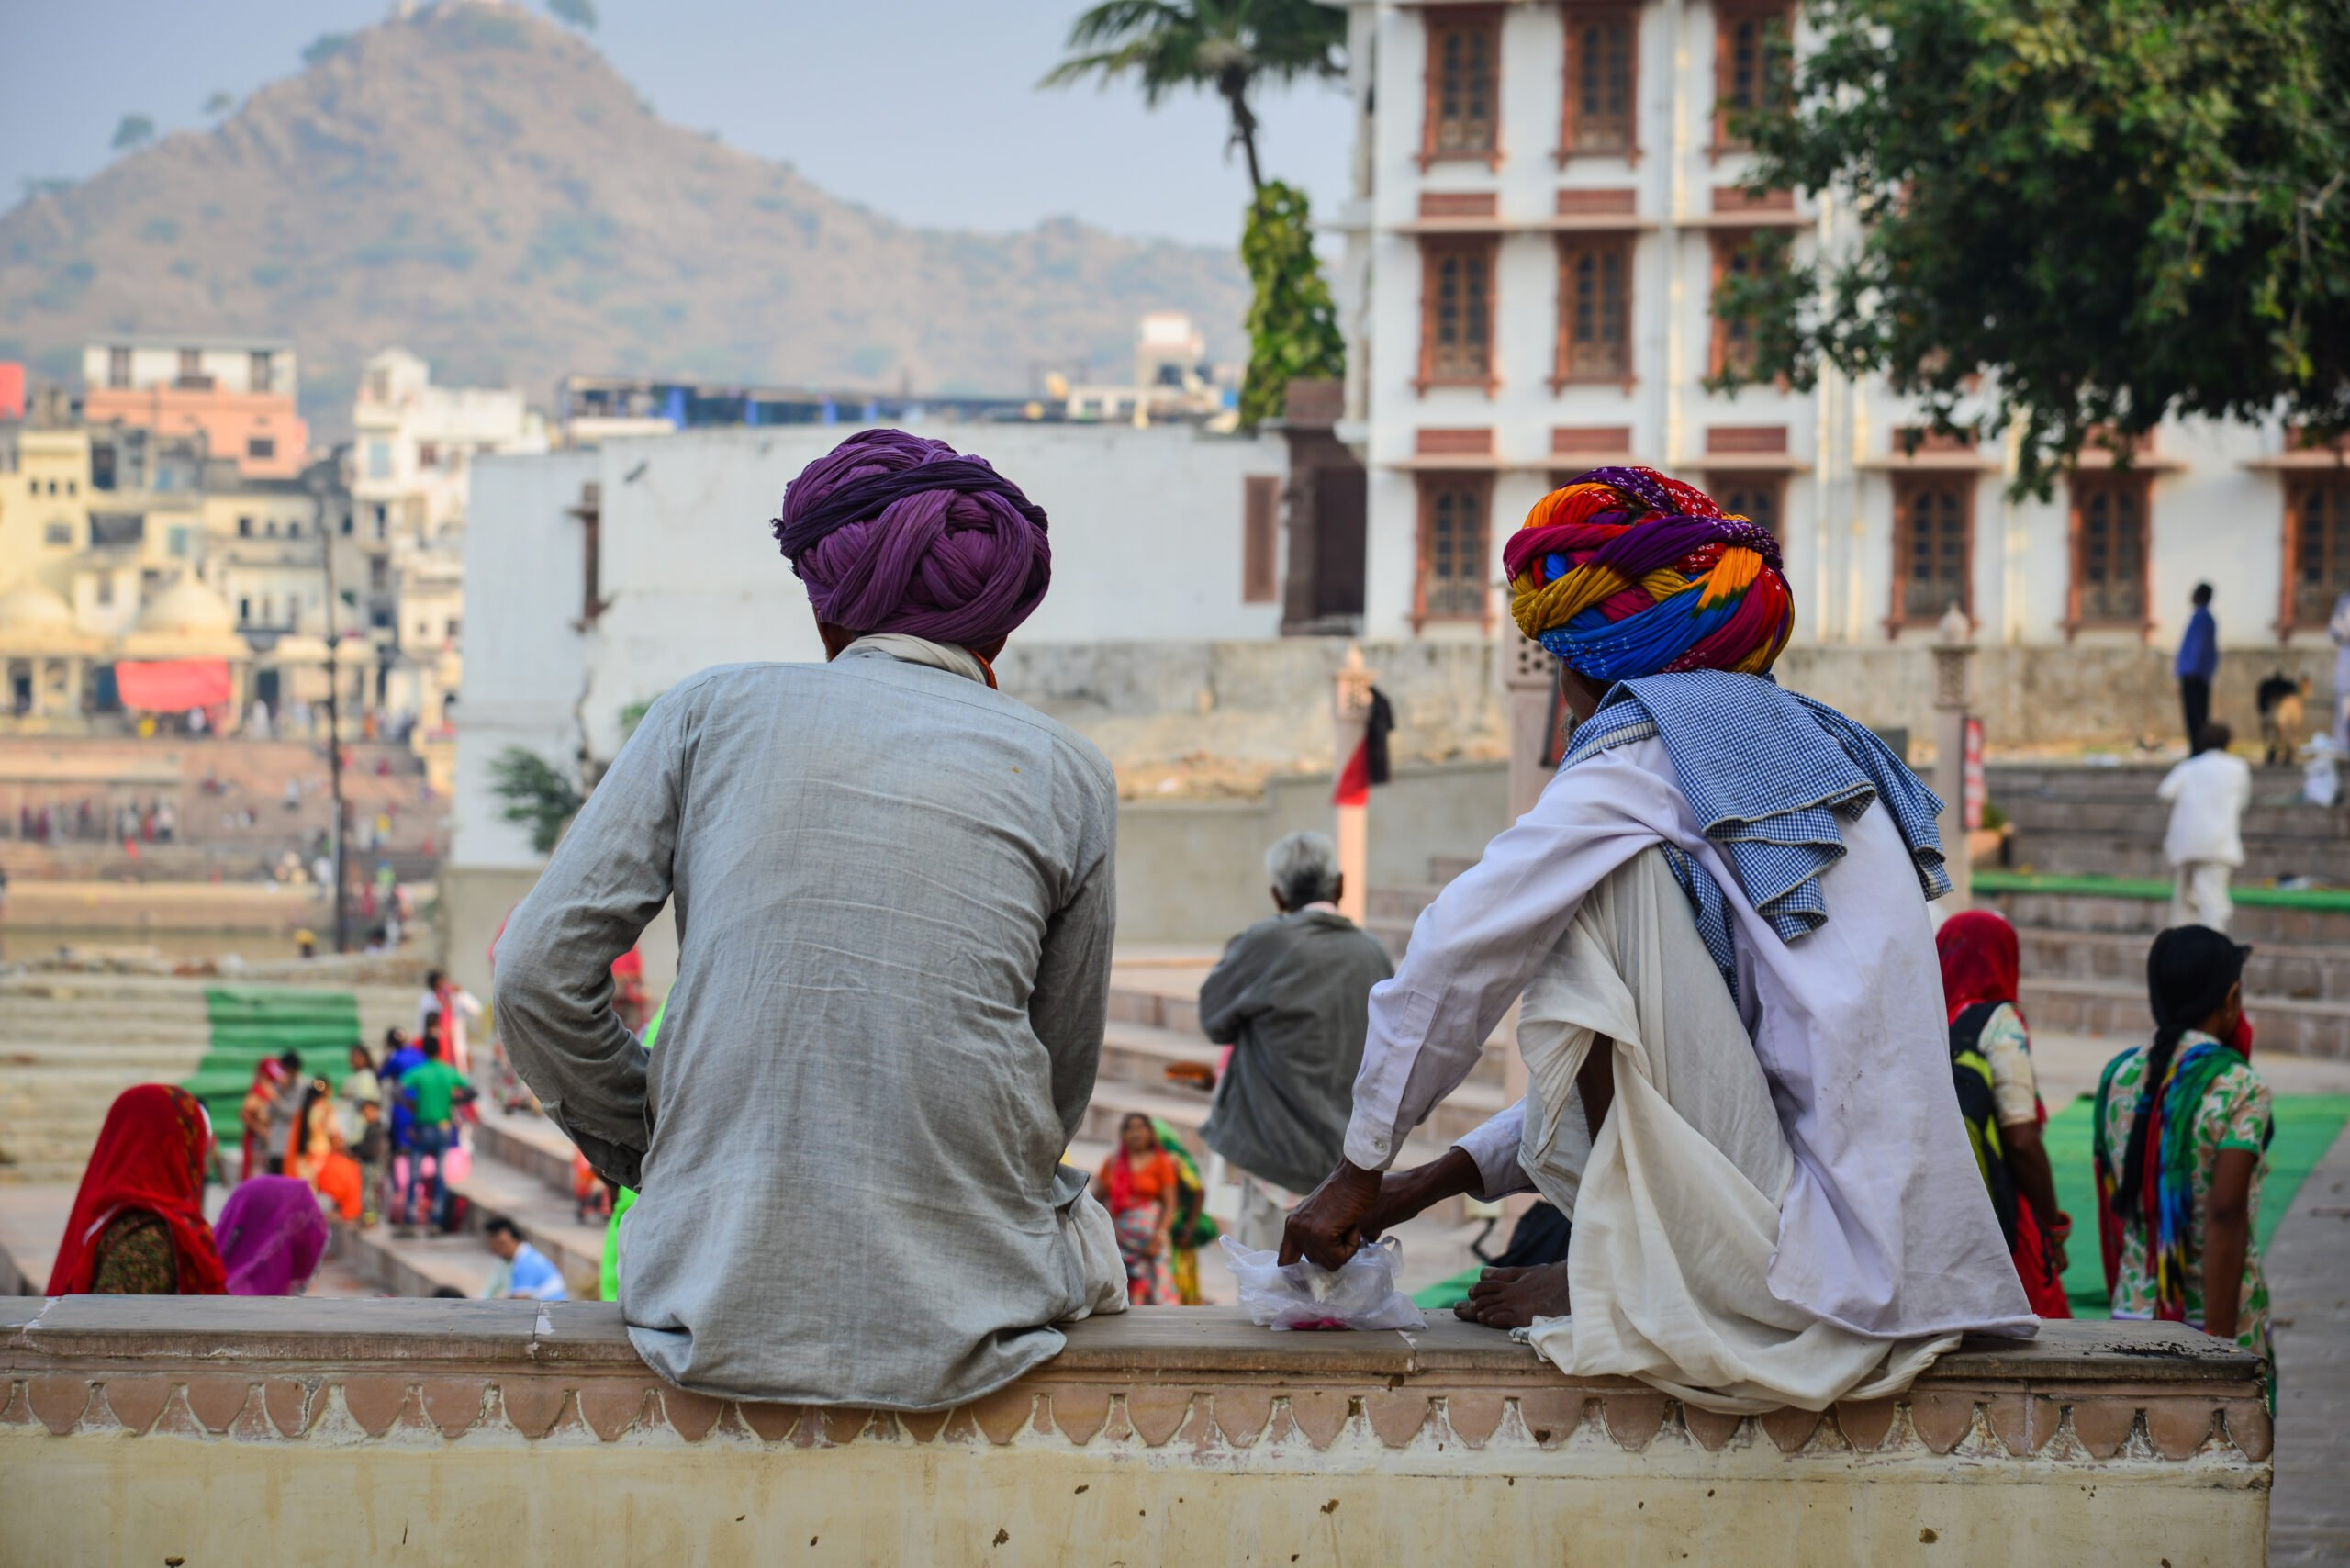 Explore The Unique Culture Of Rajasthan In Our 5 Day Best Of Rajasthan Including Taj Mahal